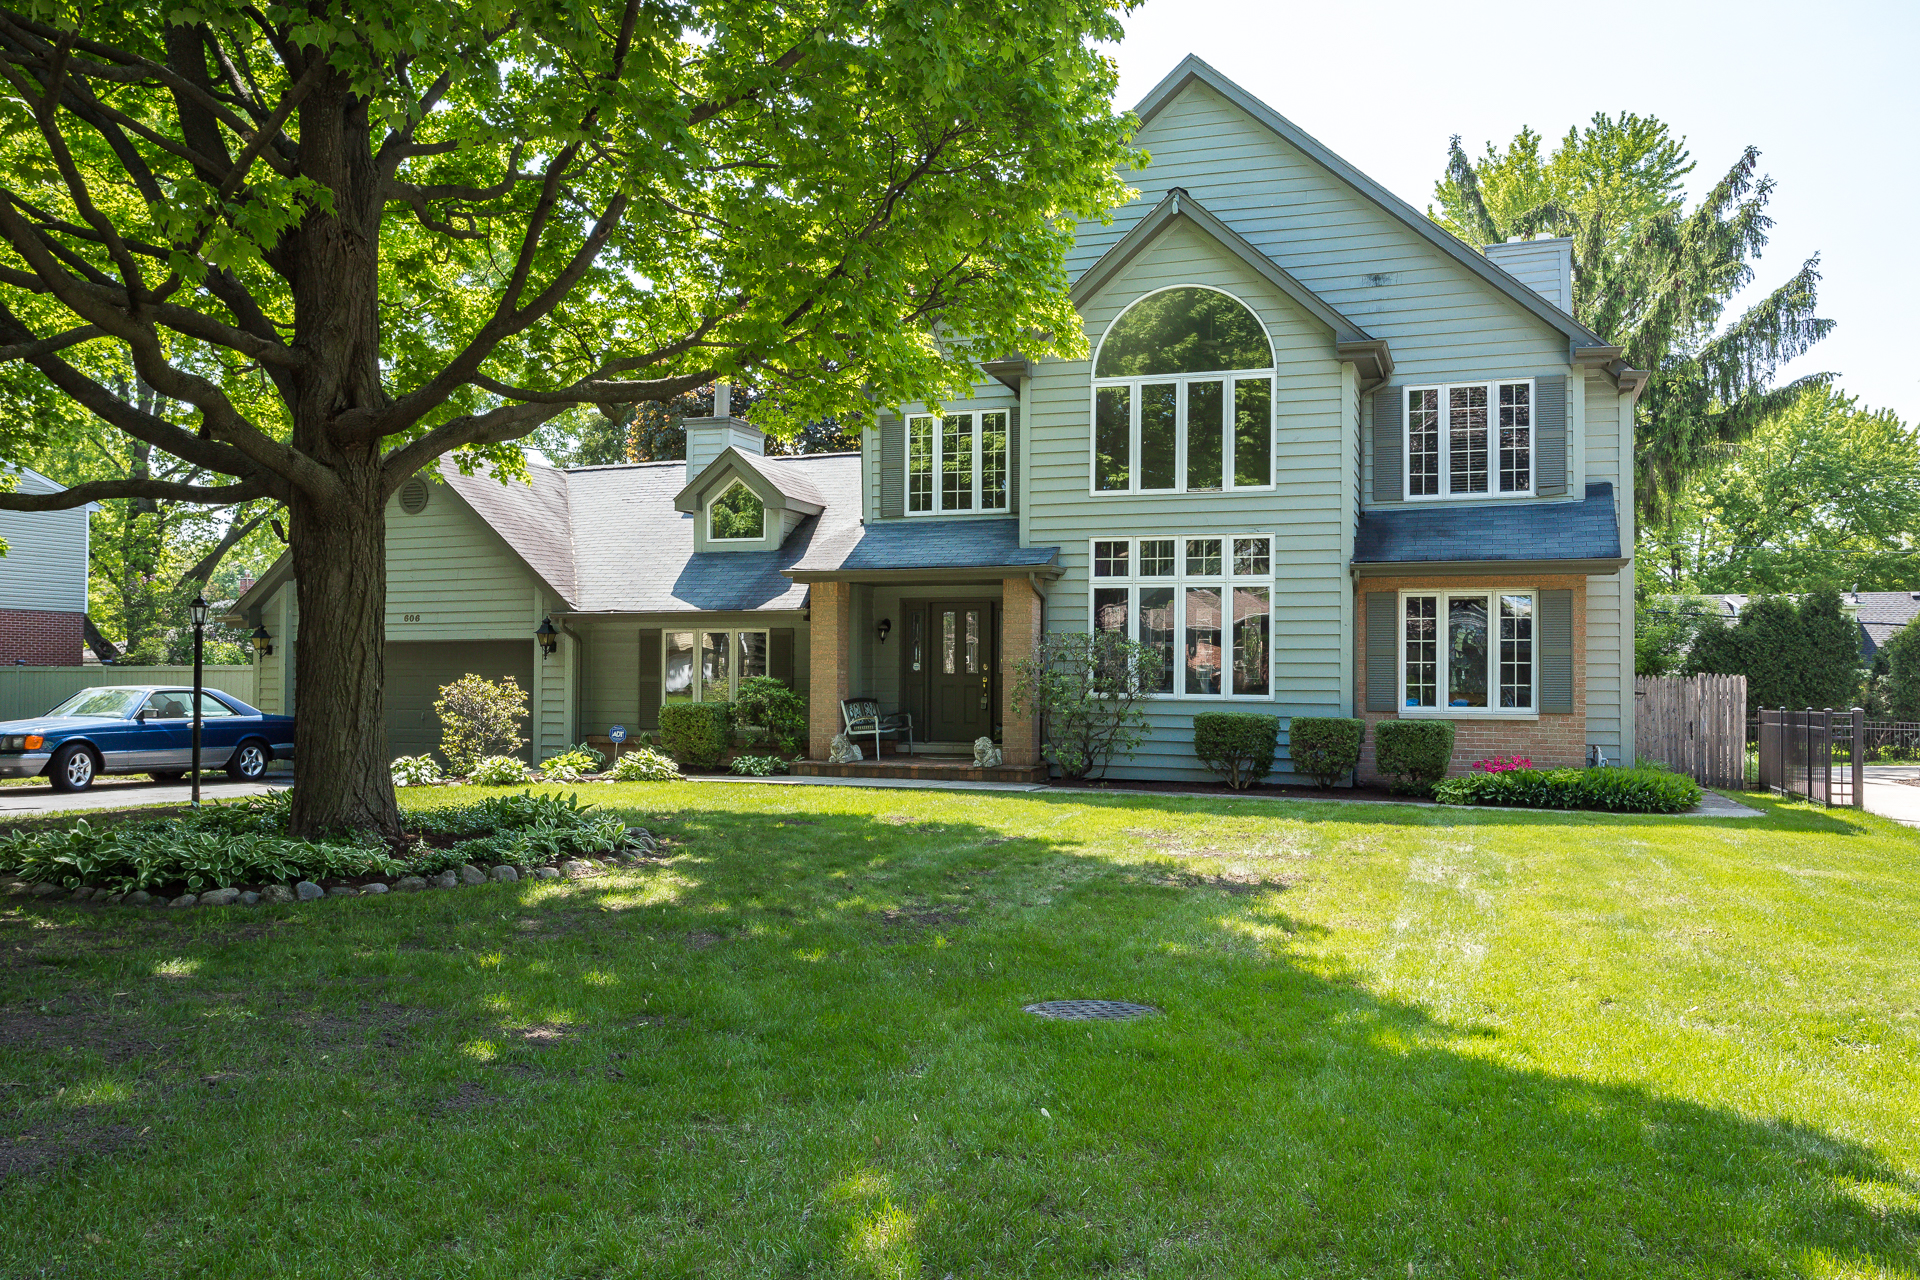 Single Family Home for Sale at 606 Justina 606 Justina Street Hinsdale, Illinois, 60521 United States